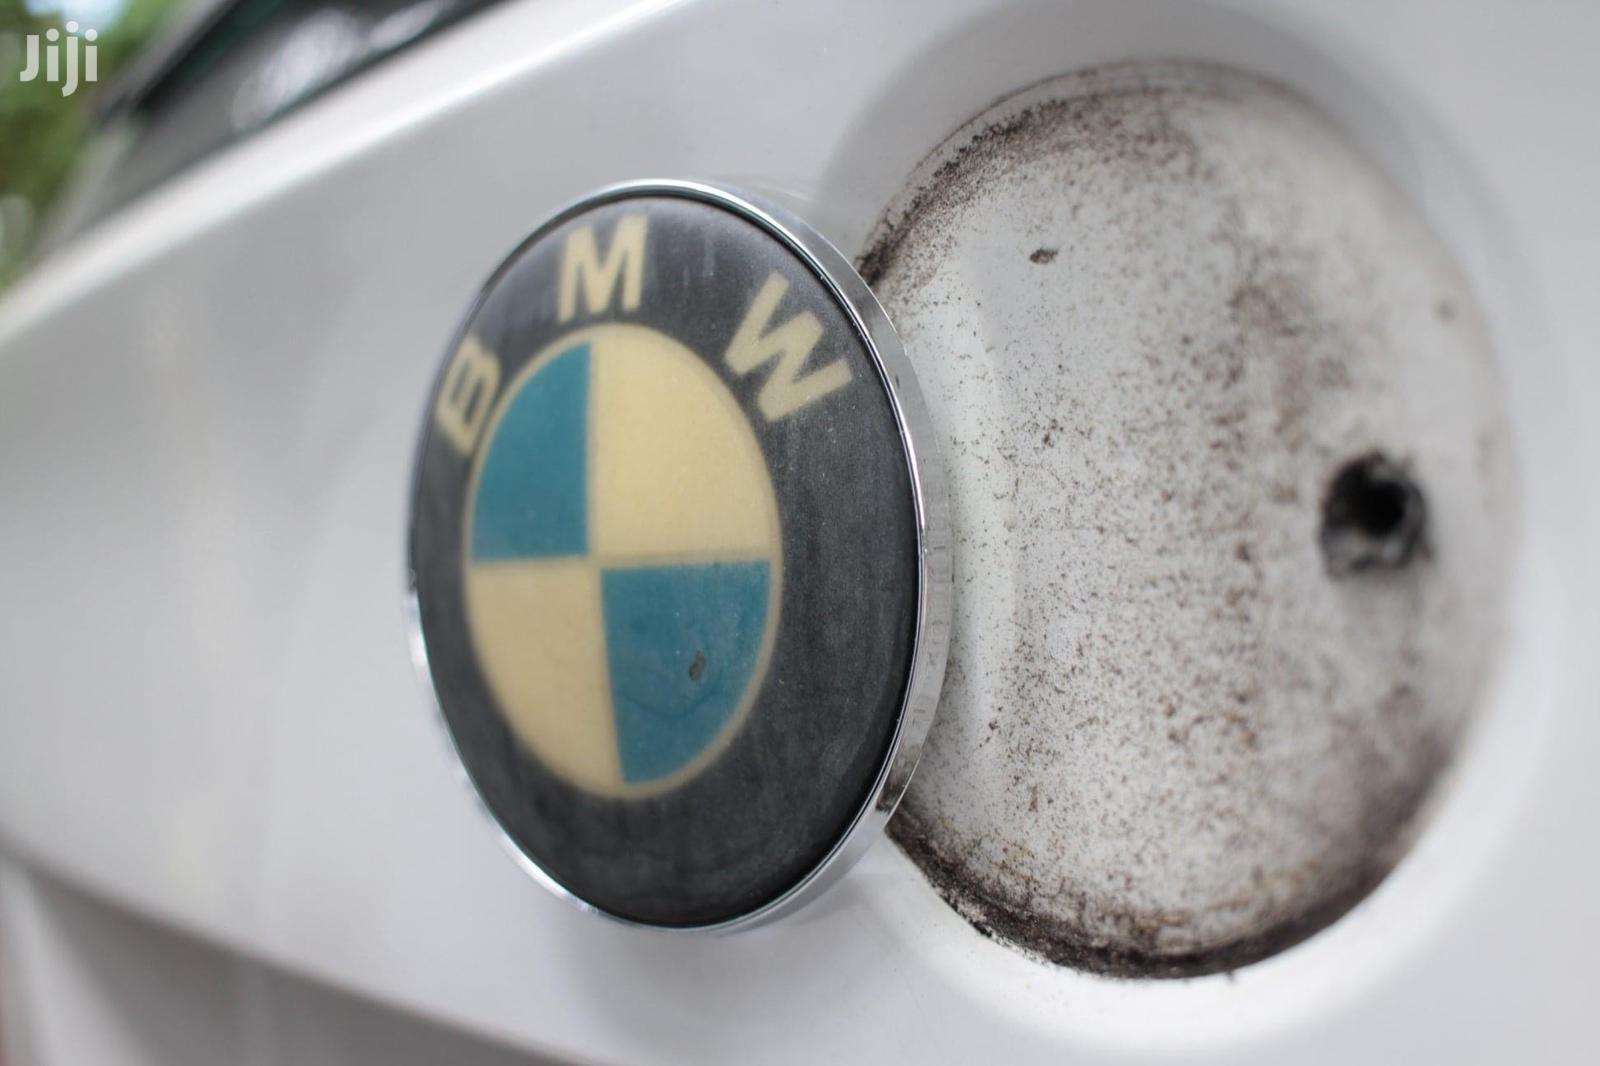 Original Used Mercedes Benz New BMW Emblems | Vehicle Parts & Accessories for sale in Kampala, Central Region, Uganda